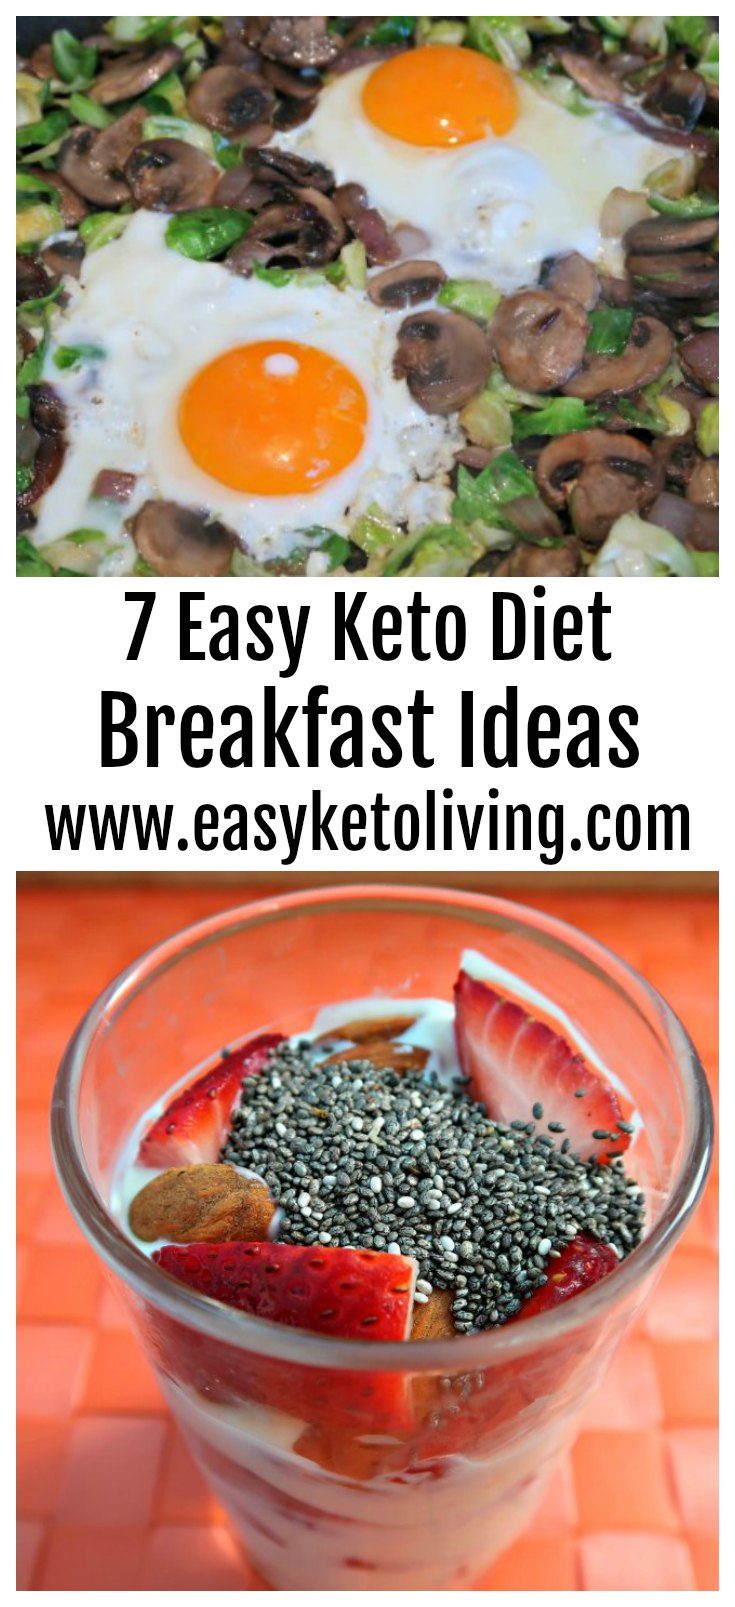 7 Keto Breakfast Ideas - Easy Low Carb and Ketogenic Breakfast Recipes